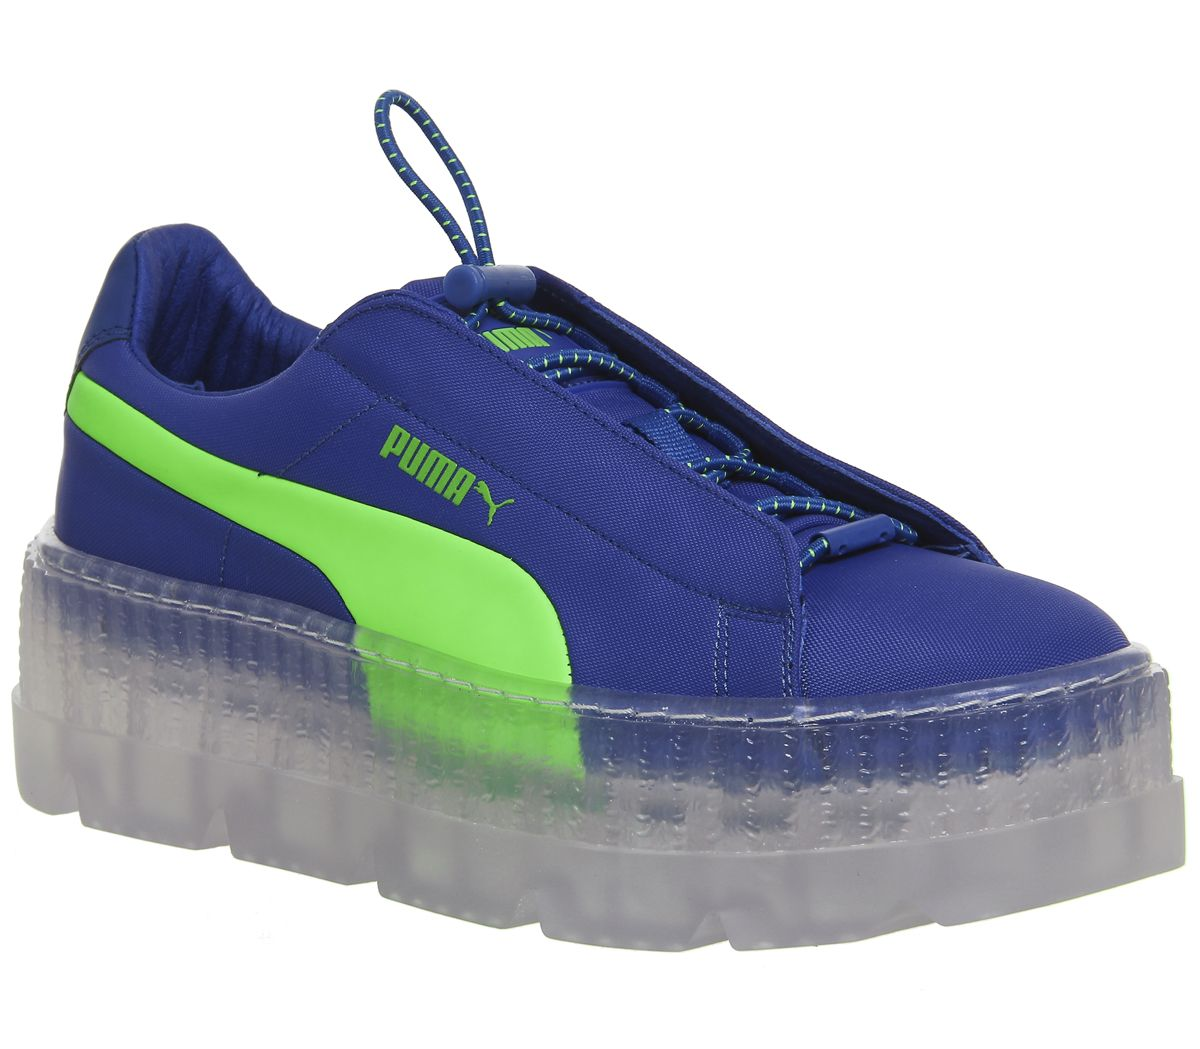 buy online e9410 df1ce Fenty Cleated Creepers